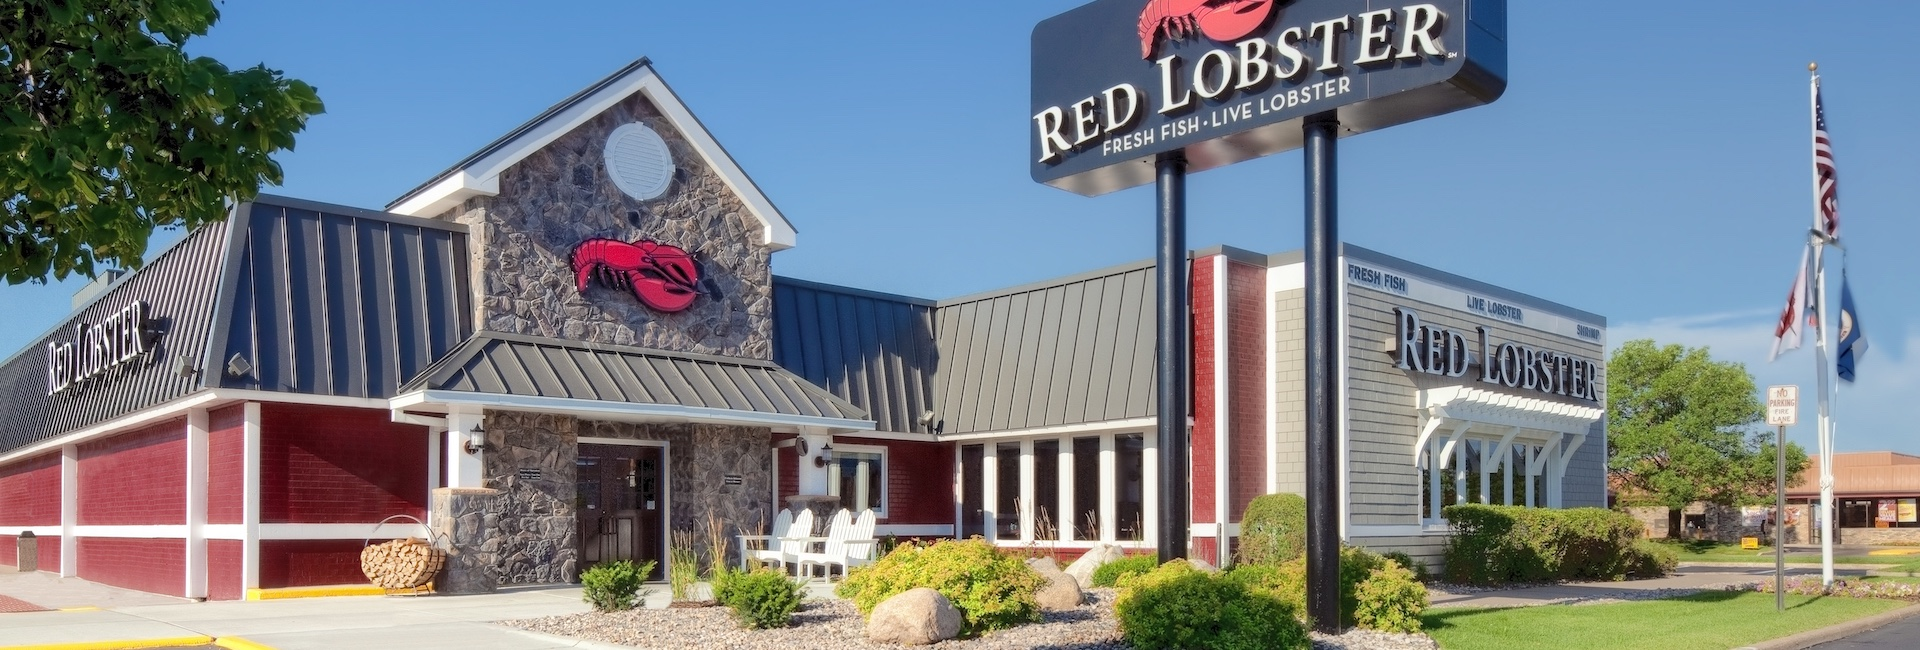 red lobster marketing plan Darden restaurants announced that it would jettison its red lobster marketing and pricing at red lobster and olive garden, we view the plan darden.